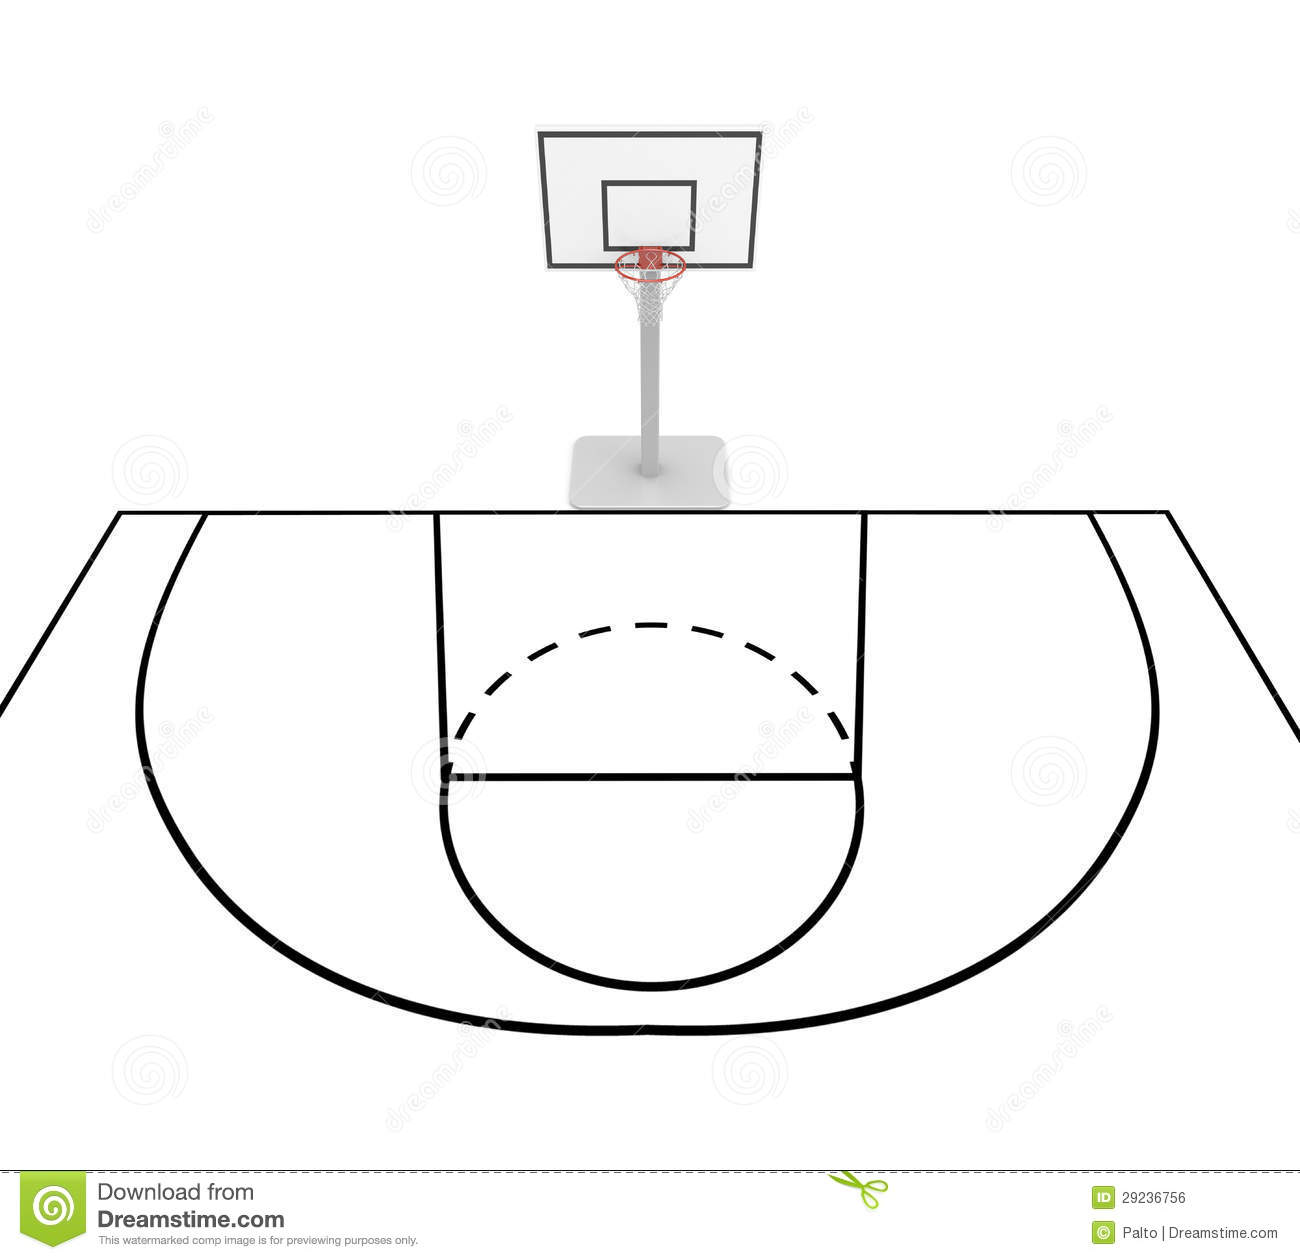 basketball court diagram for coaches sample network floor plan stock illustration of